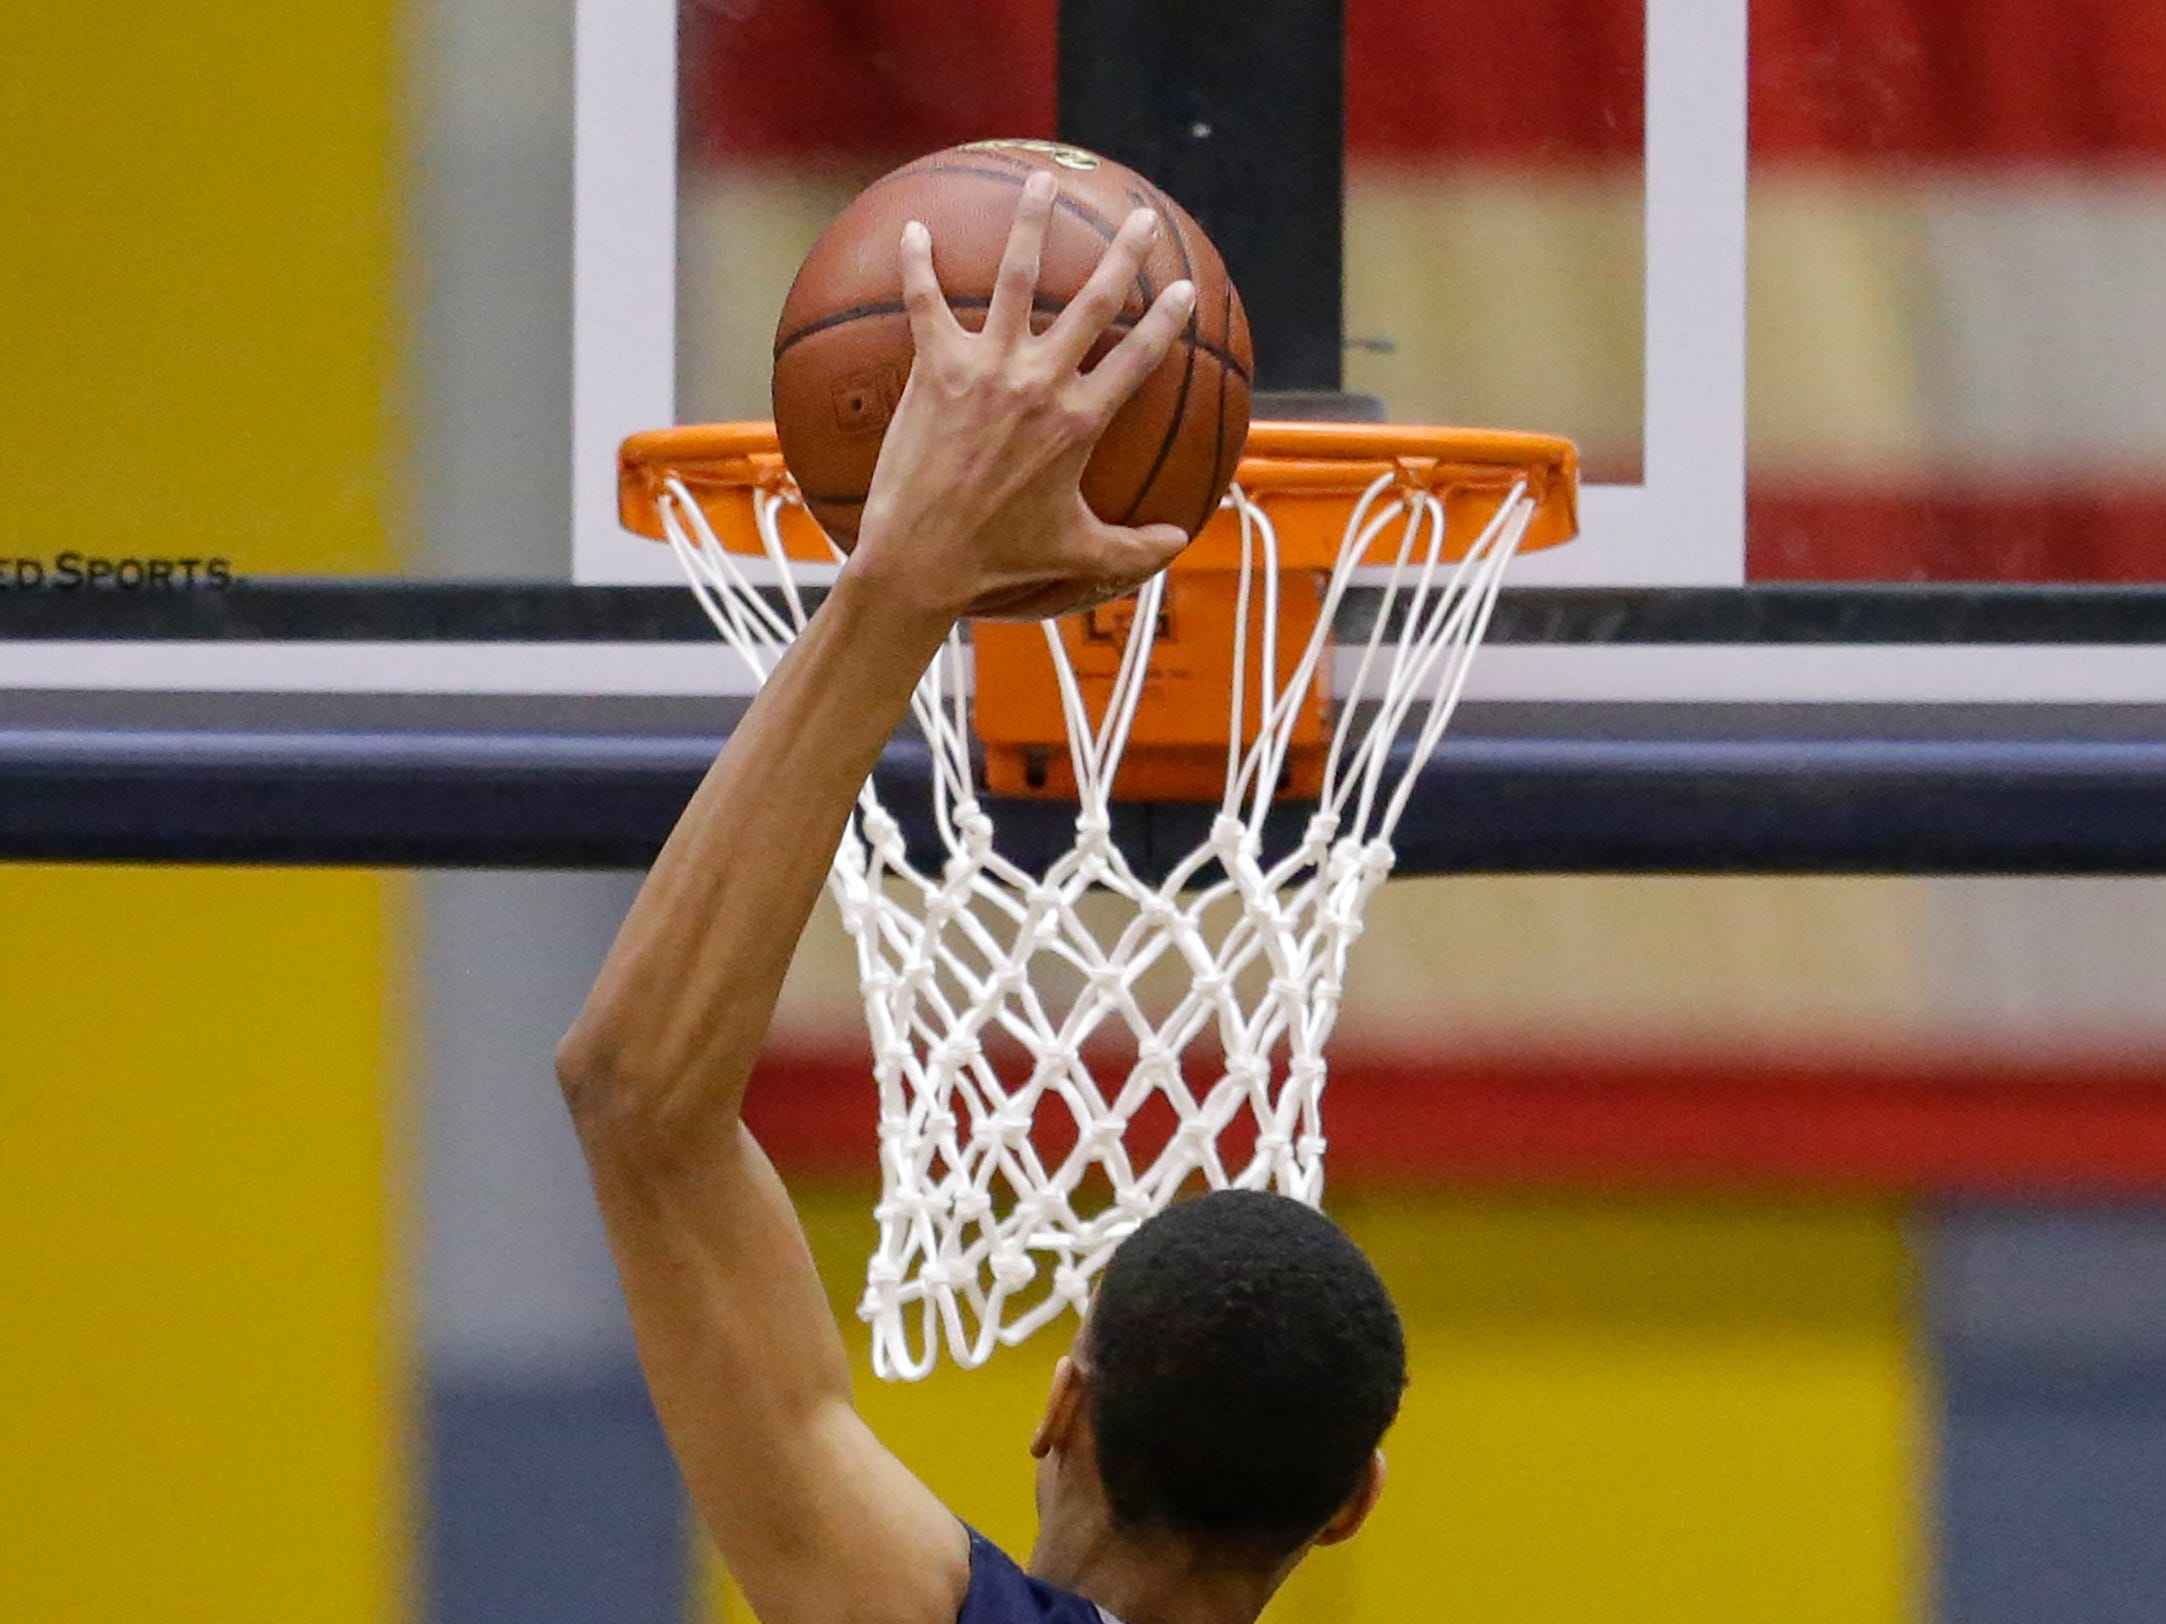 Milwaukee Academy of Science's Darius Hannah (35) dunks the ball against Roncalli during a WIAA Division 4 sectional championship at Sheboygan North High School Saturday, March 9, 2019, in Sheboygan, Wis. Joshua Clark/USA TODAY NETWORK-Wisconsin